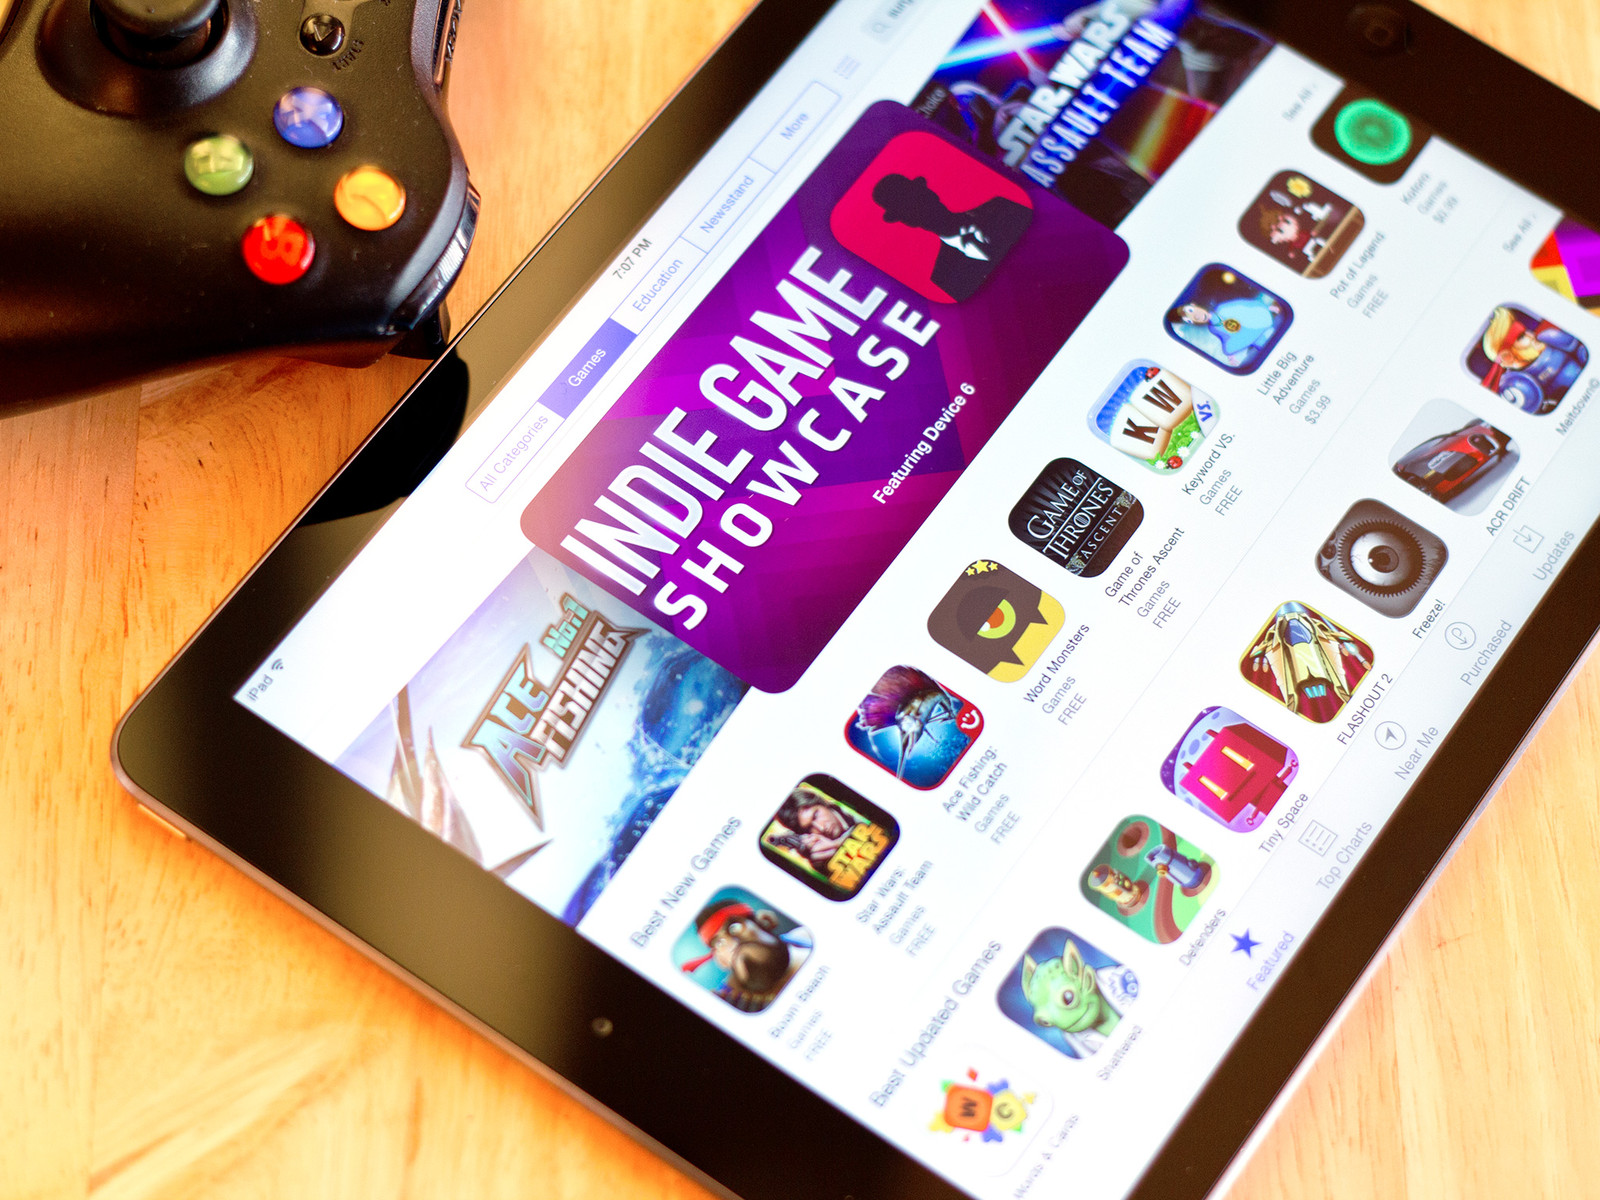 Best iOS games of March 2014